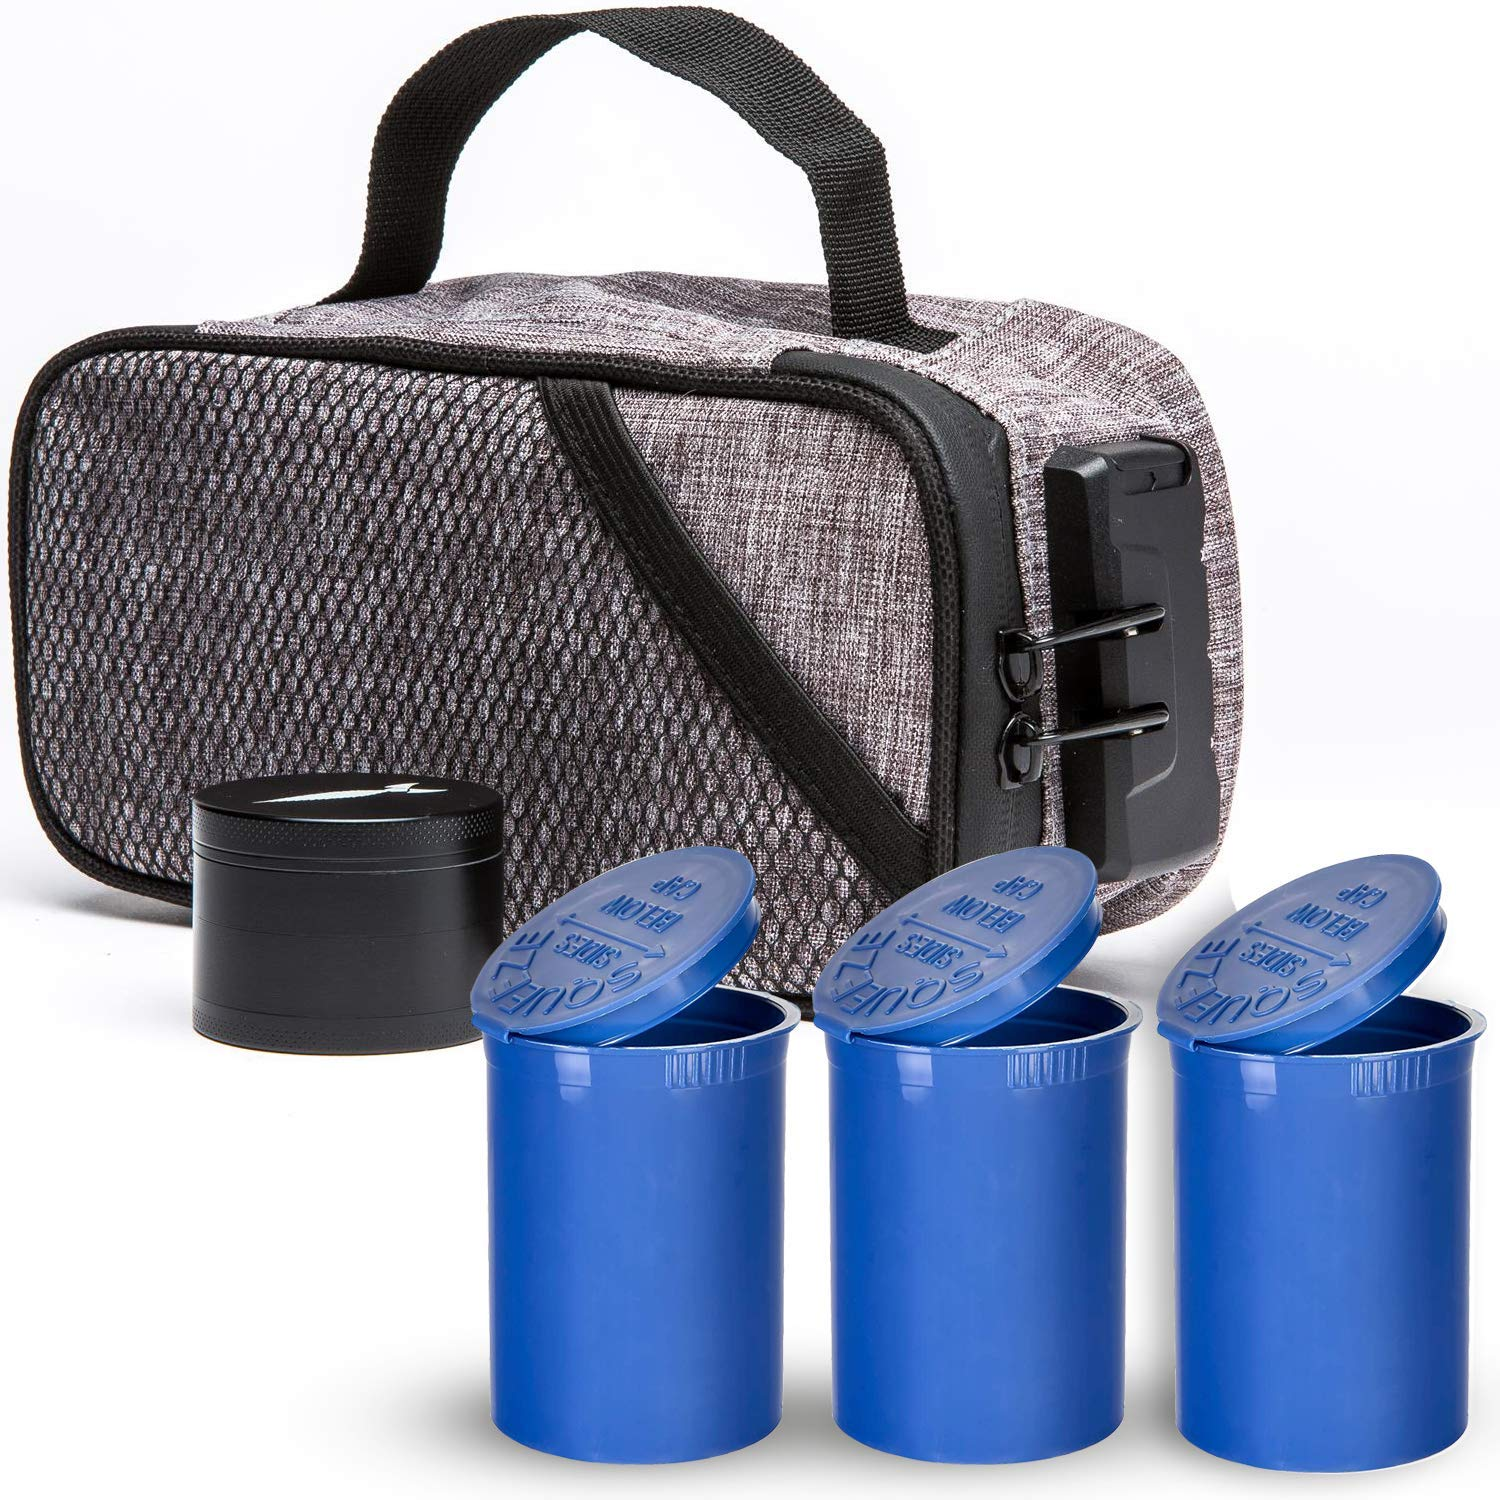 Stash Man Smell Proof Case with Lock - Activated Carbon Lining - Includes 3 Airtight Pop Tubes & 4 Part Grinder - Odor Resistant Travel Storage - Perfect for Dry Herb, Medicinal, Lighter & Accessories